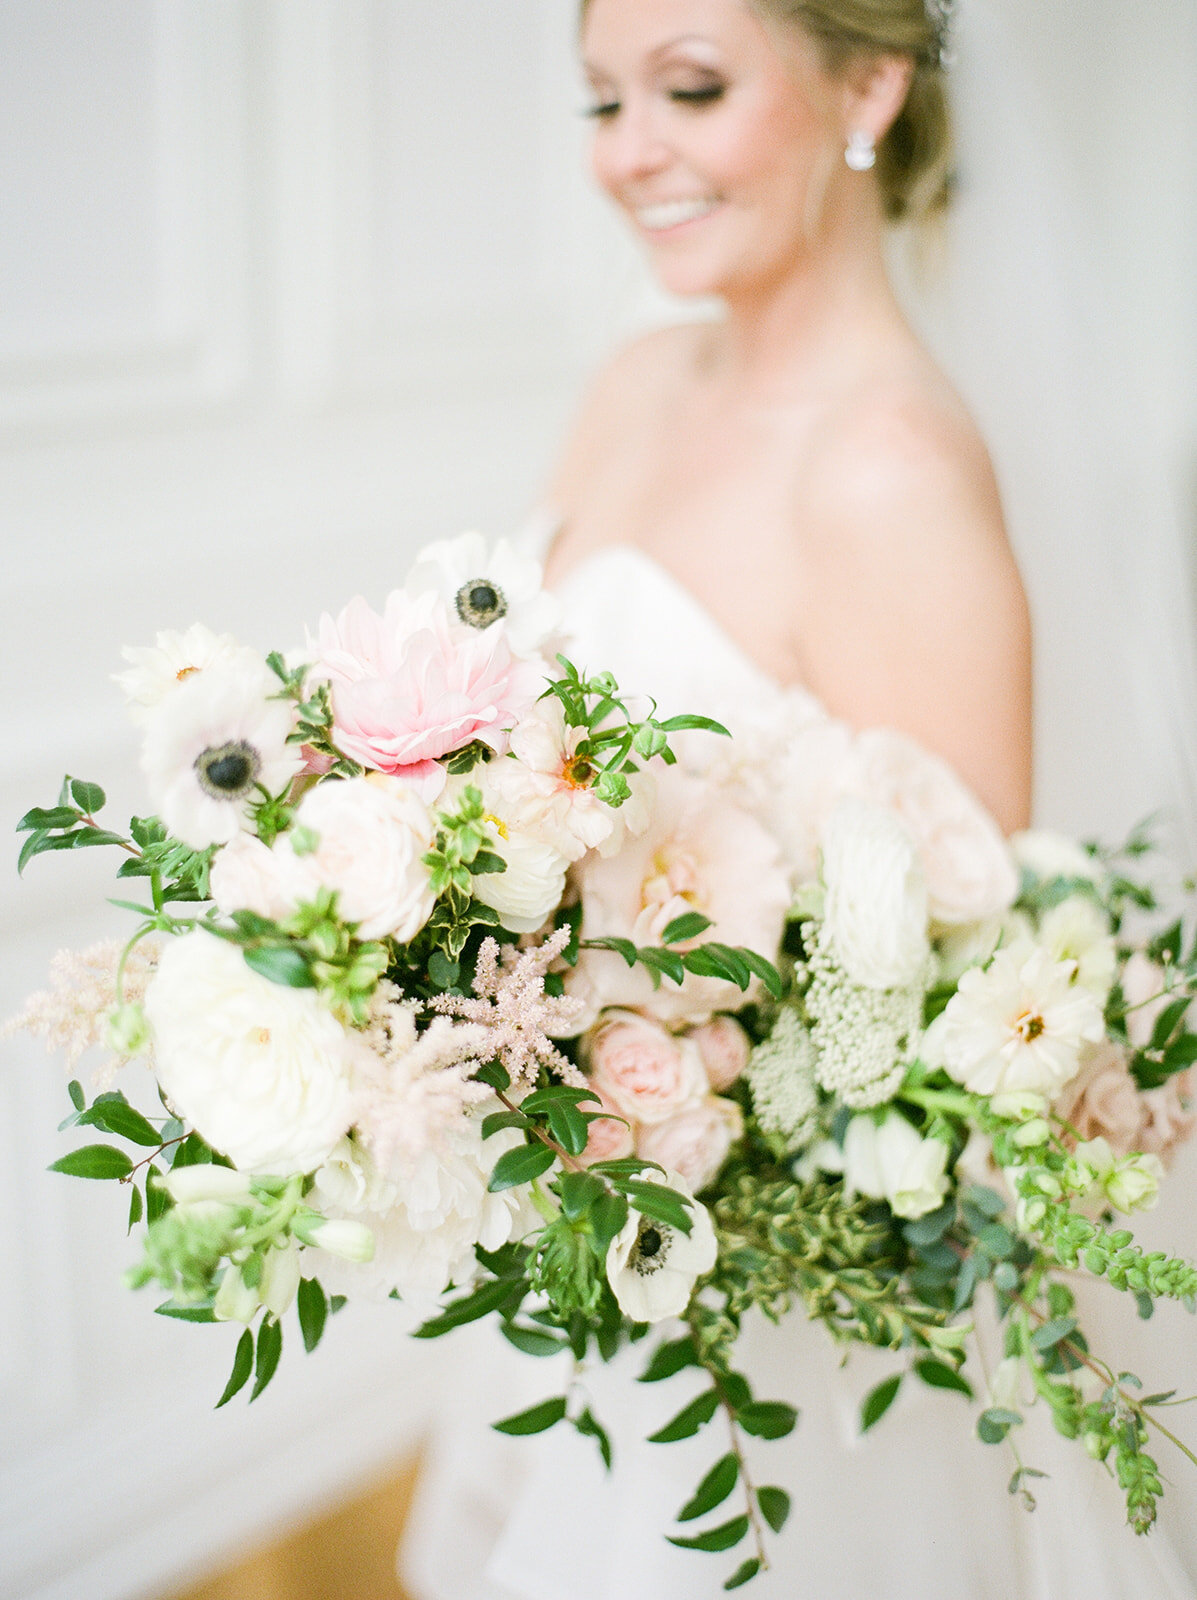 Garden-inspired bride's bouquet with blush and white color palette including lots of lush, untamed greenery. Nashville wedding floral designer, Rosemary and Finch.